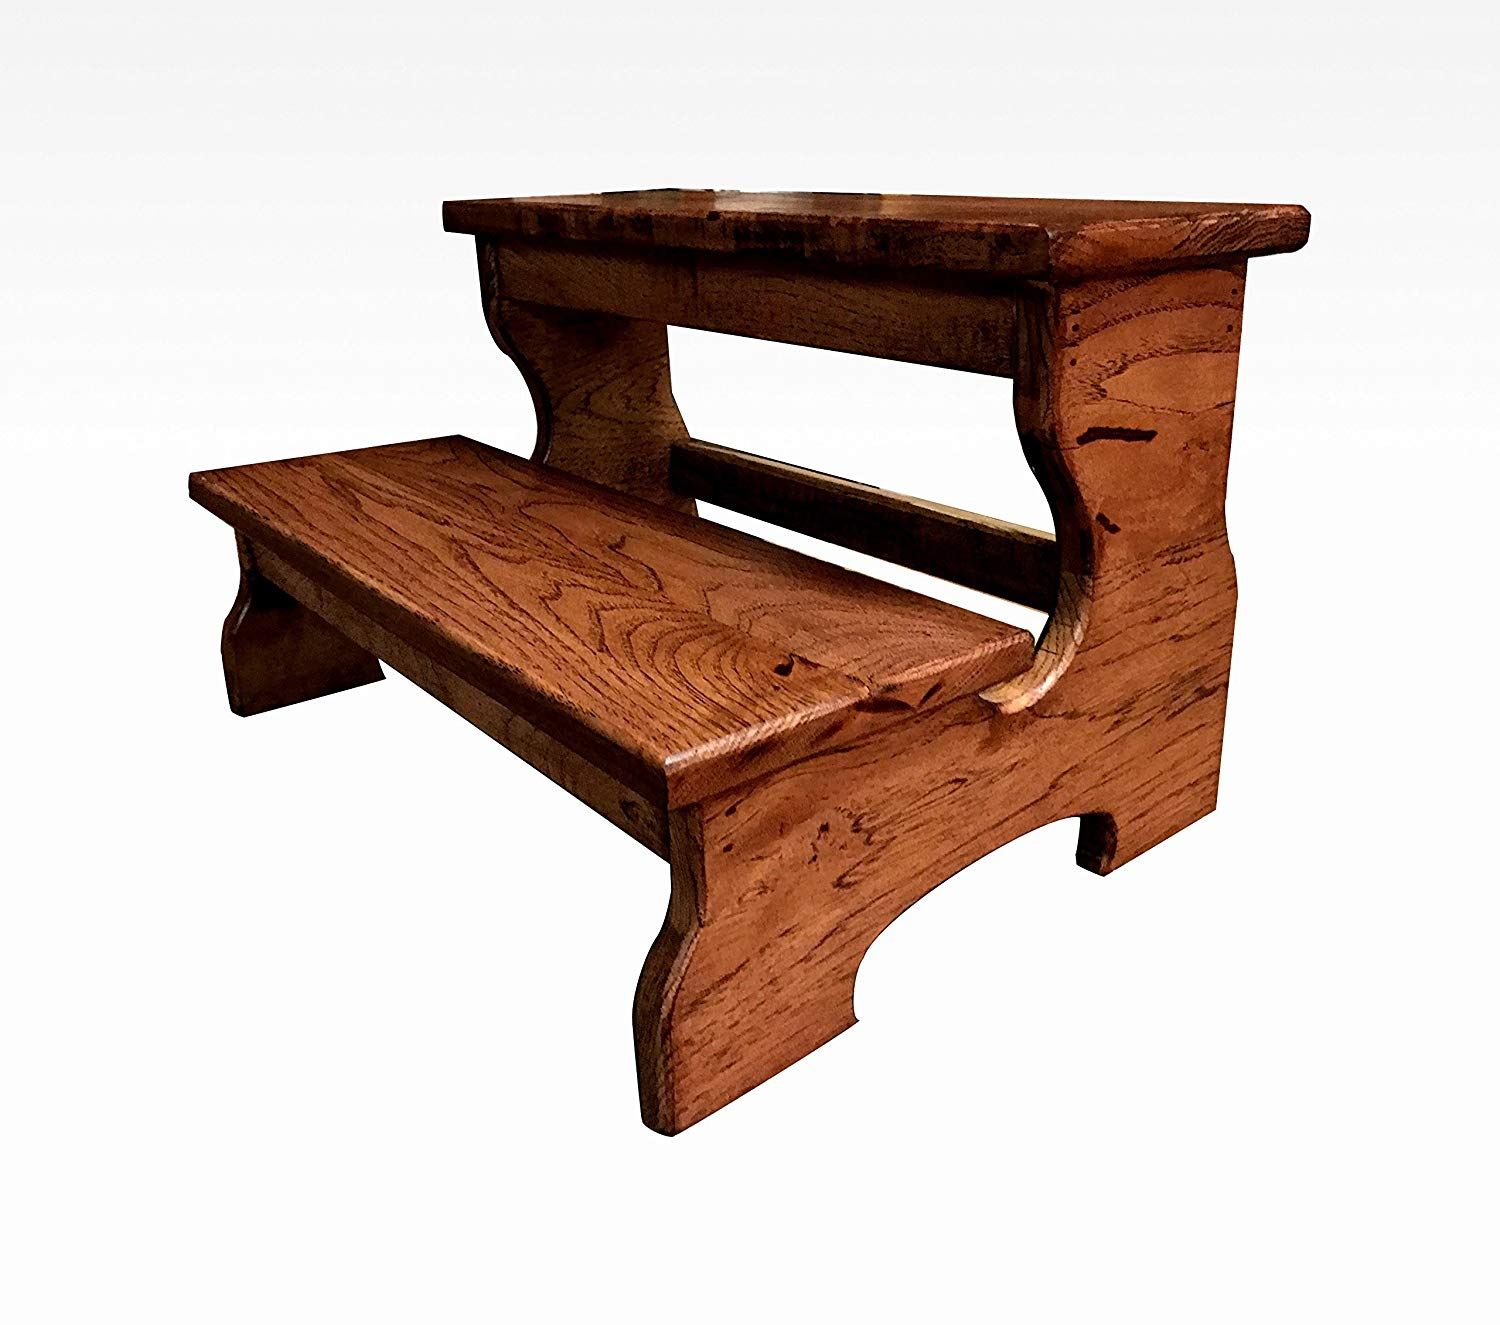 Get Quotations Two Step Stool 20 In Espresso By Cw Furniture Rustic Wood Wooden